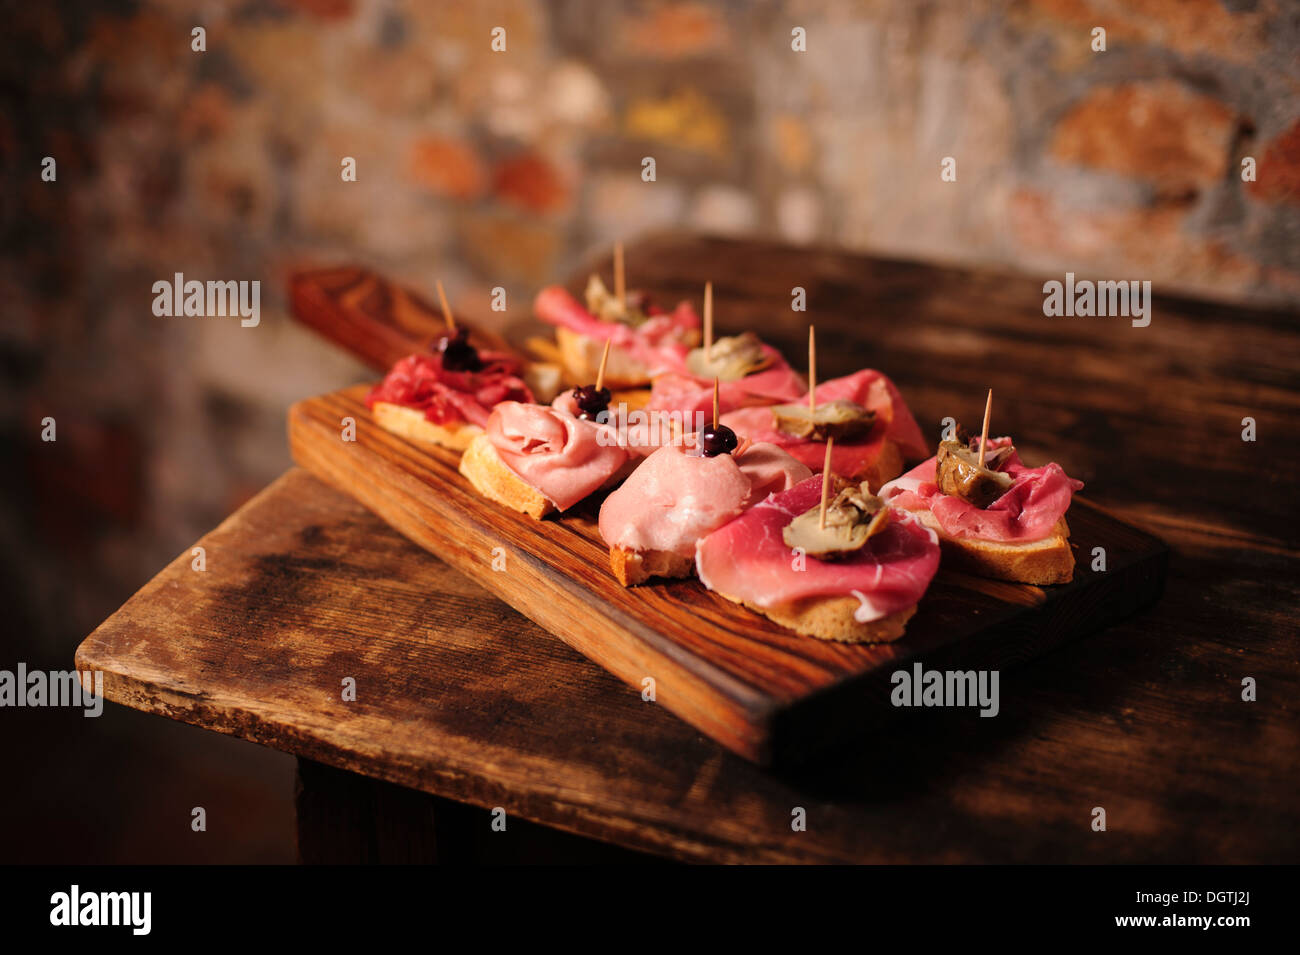 Cured meats Cicchetti appetizers at La Mascareta Restaurant, Venice, Italy. - Stock Image